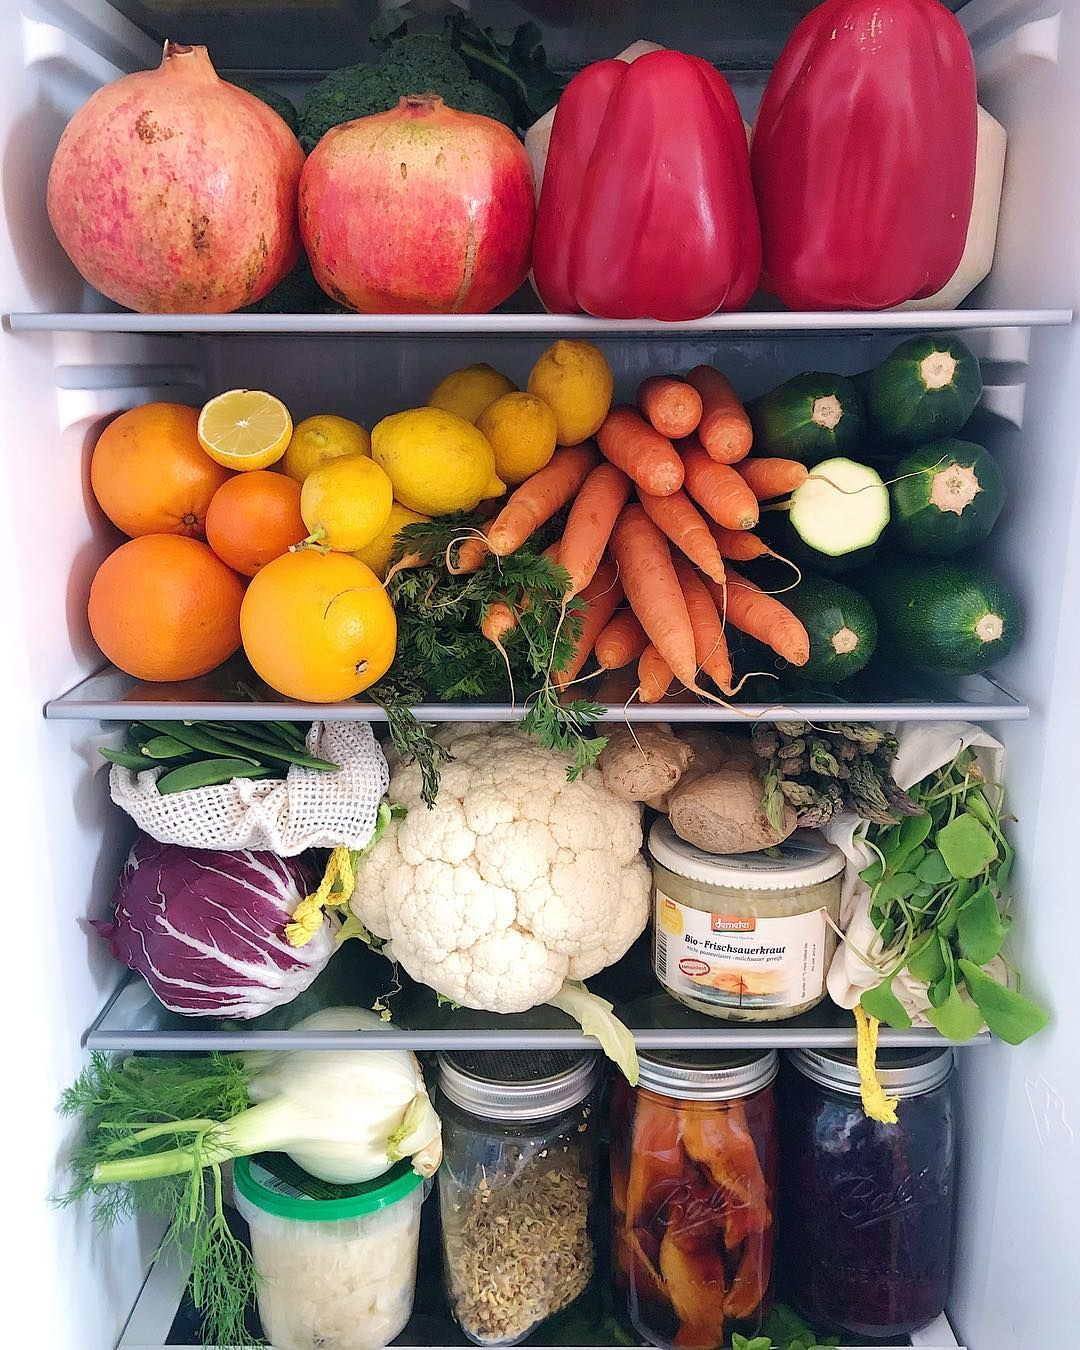 Eating more fruits, vegetables boosts psychological well-being in ...